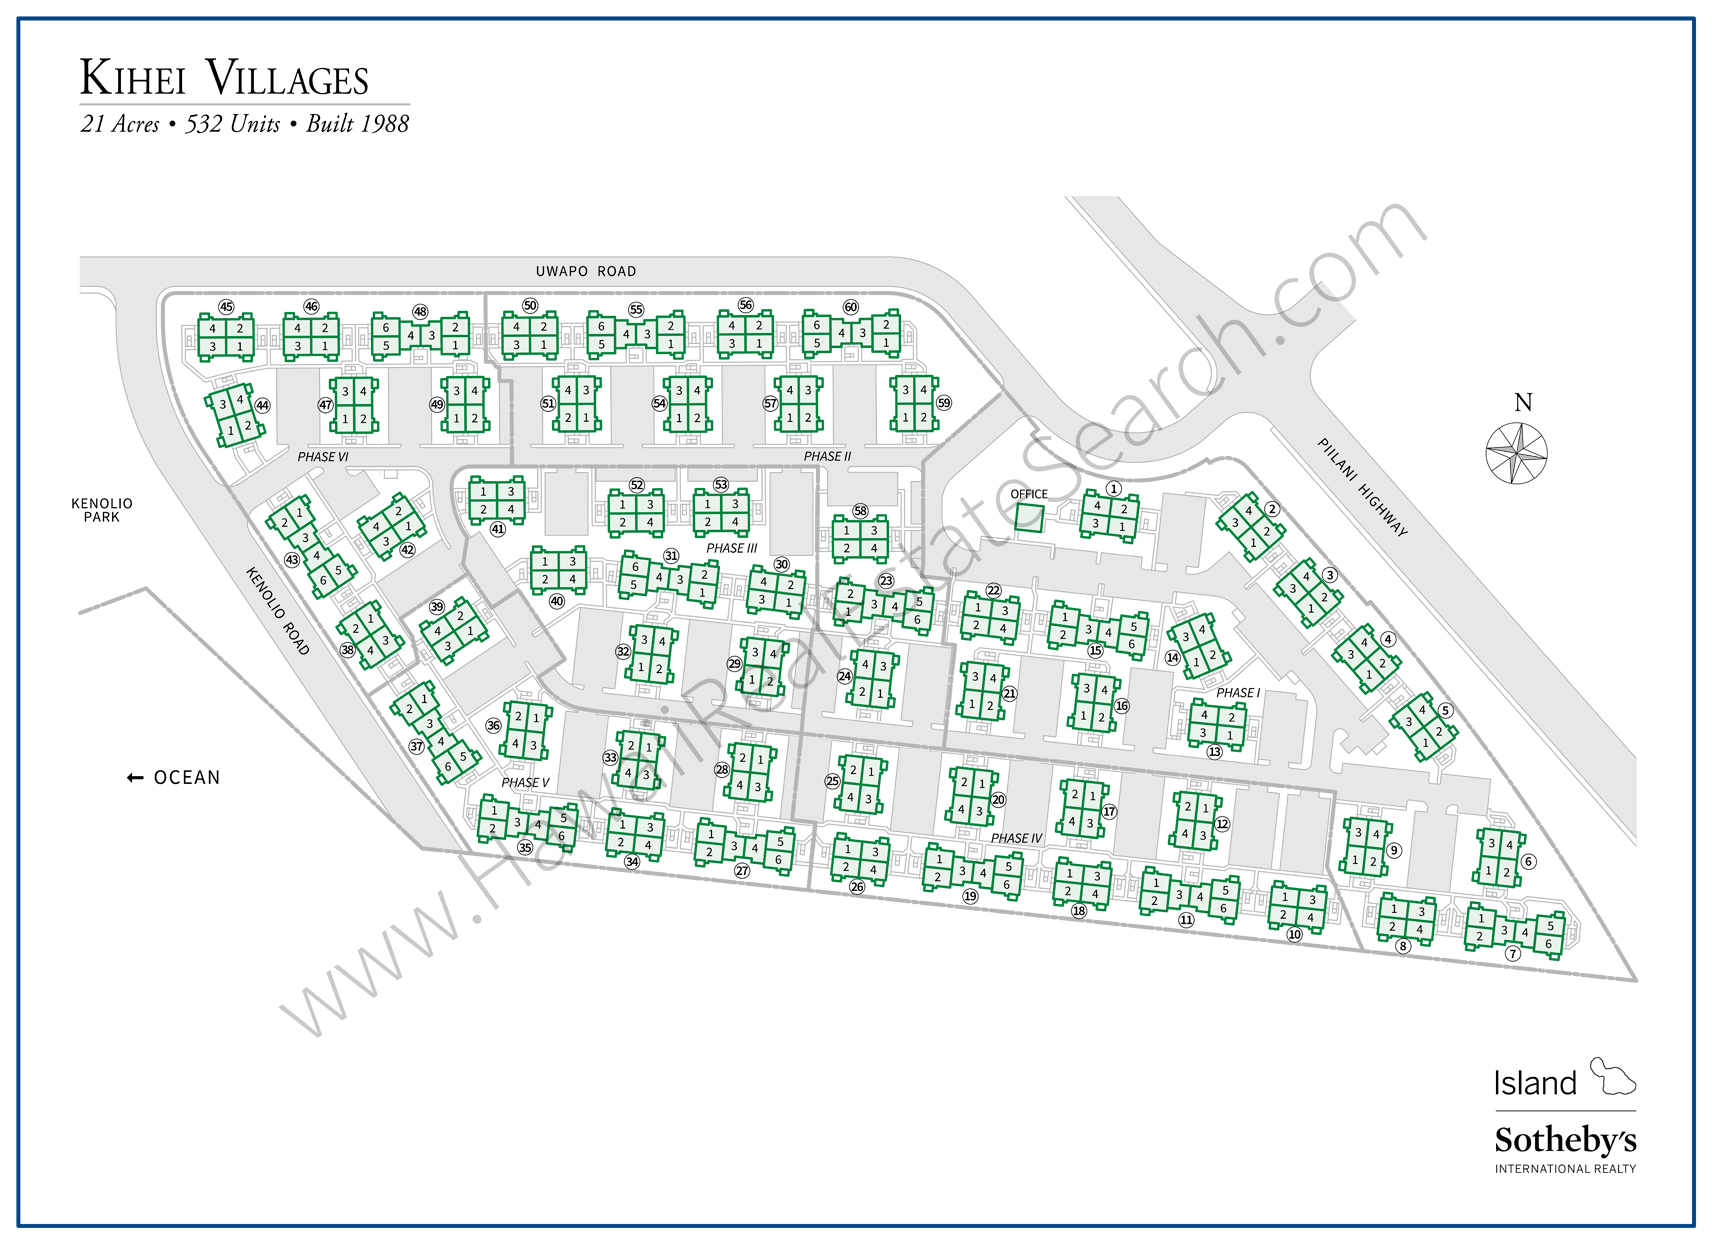 Kihei Villages Property Map Updated